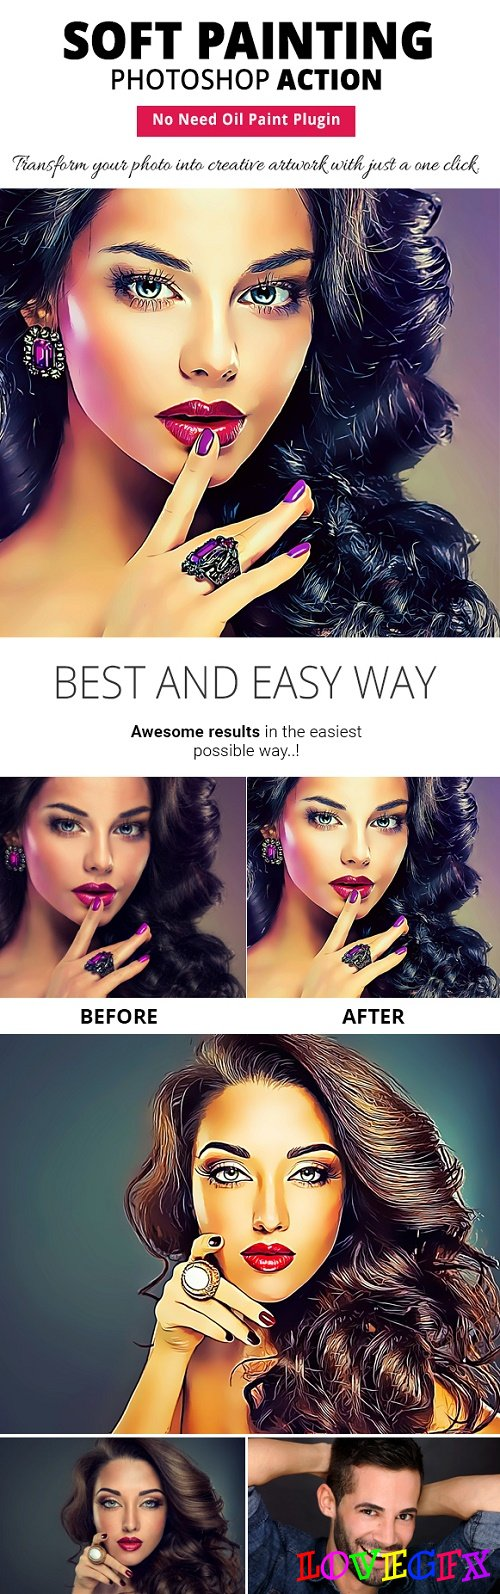 Soft Painting Photoshop Action - 22157385